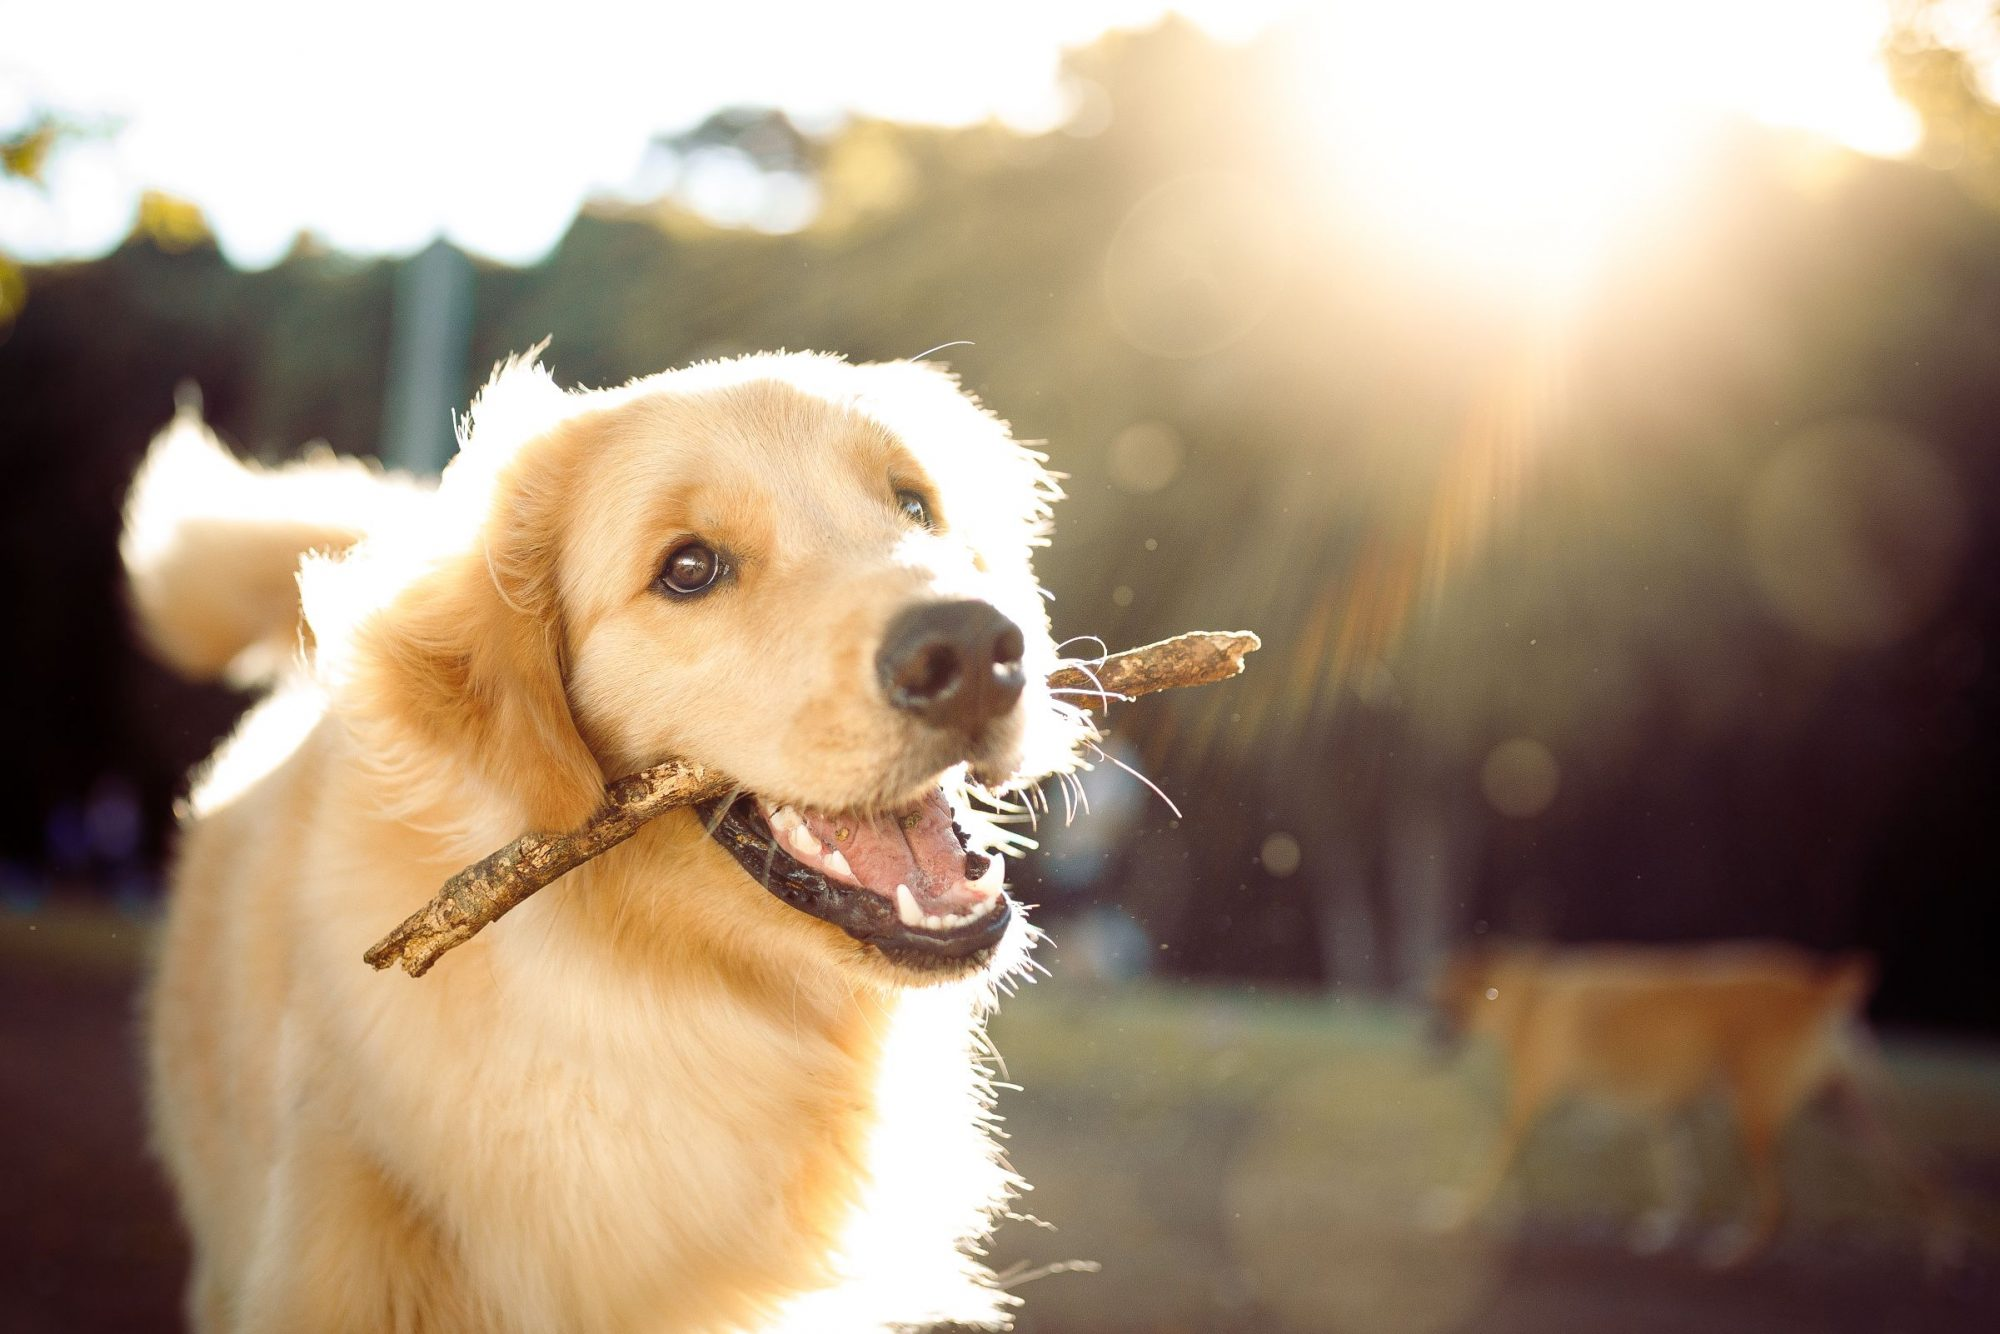 A hydrated dog in the sun, playing with a stick.